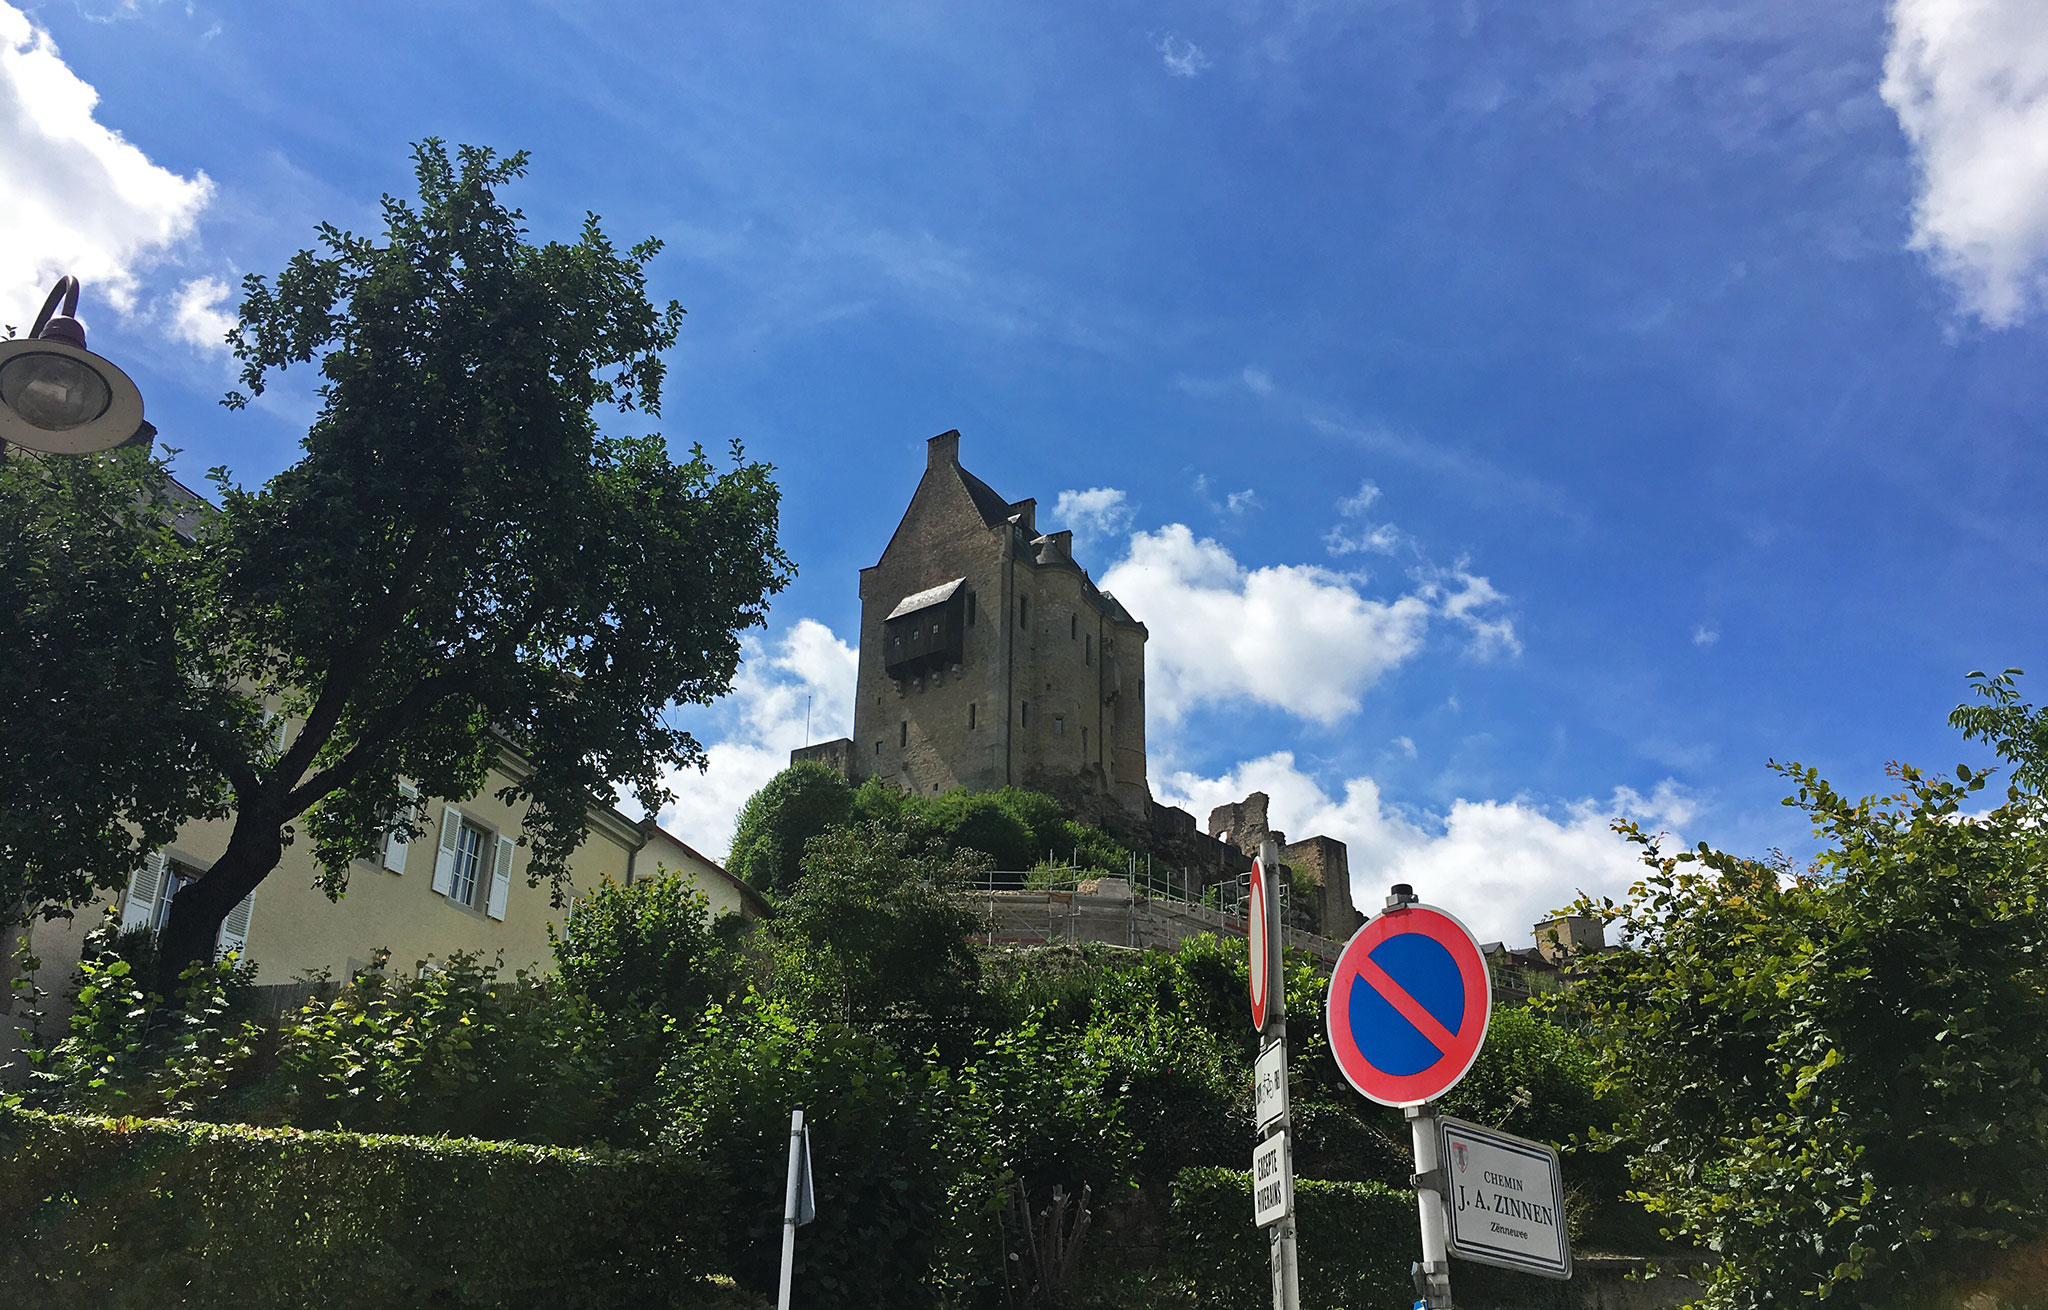 Larochette, a small town in Luxembourg here represented by the Larochette Castle